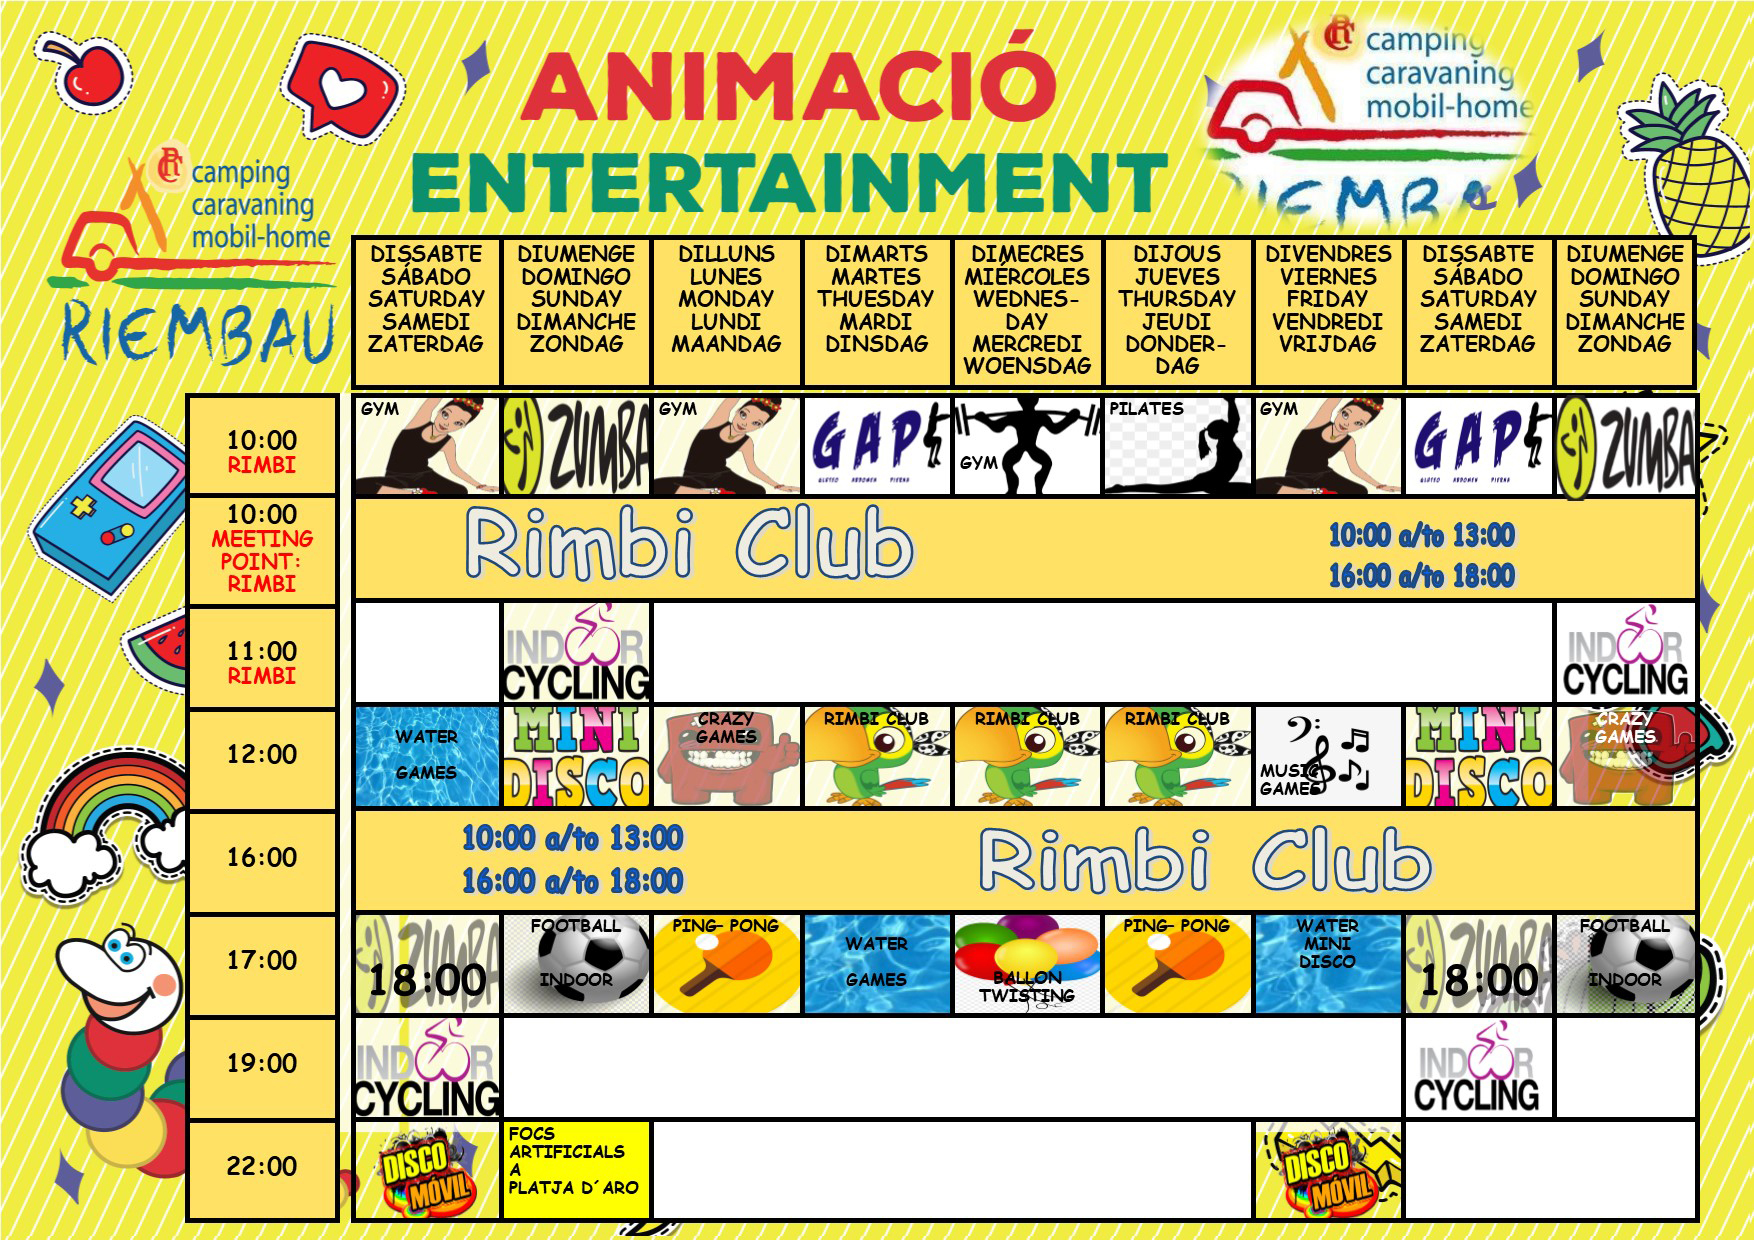 Activities from 22th to 30th June May by the Rimbi Club at Camping Riembau in Platja d'Aro!